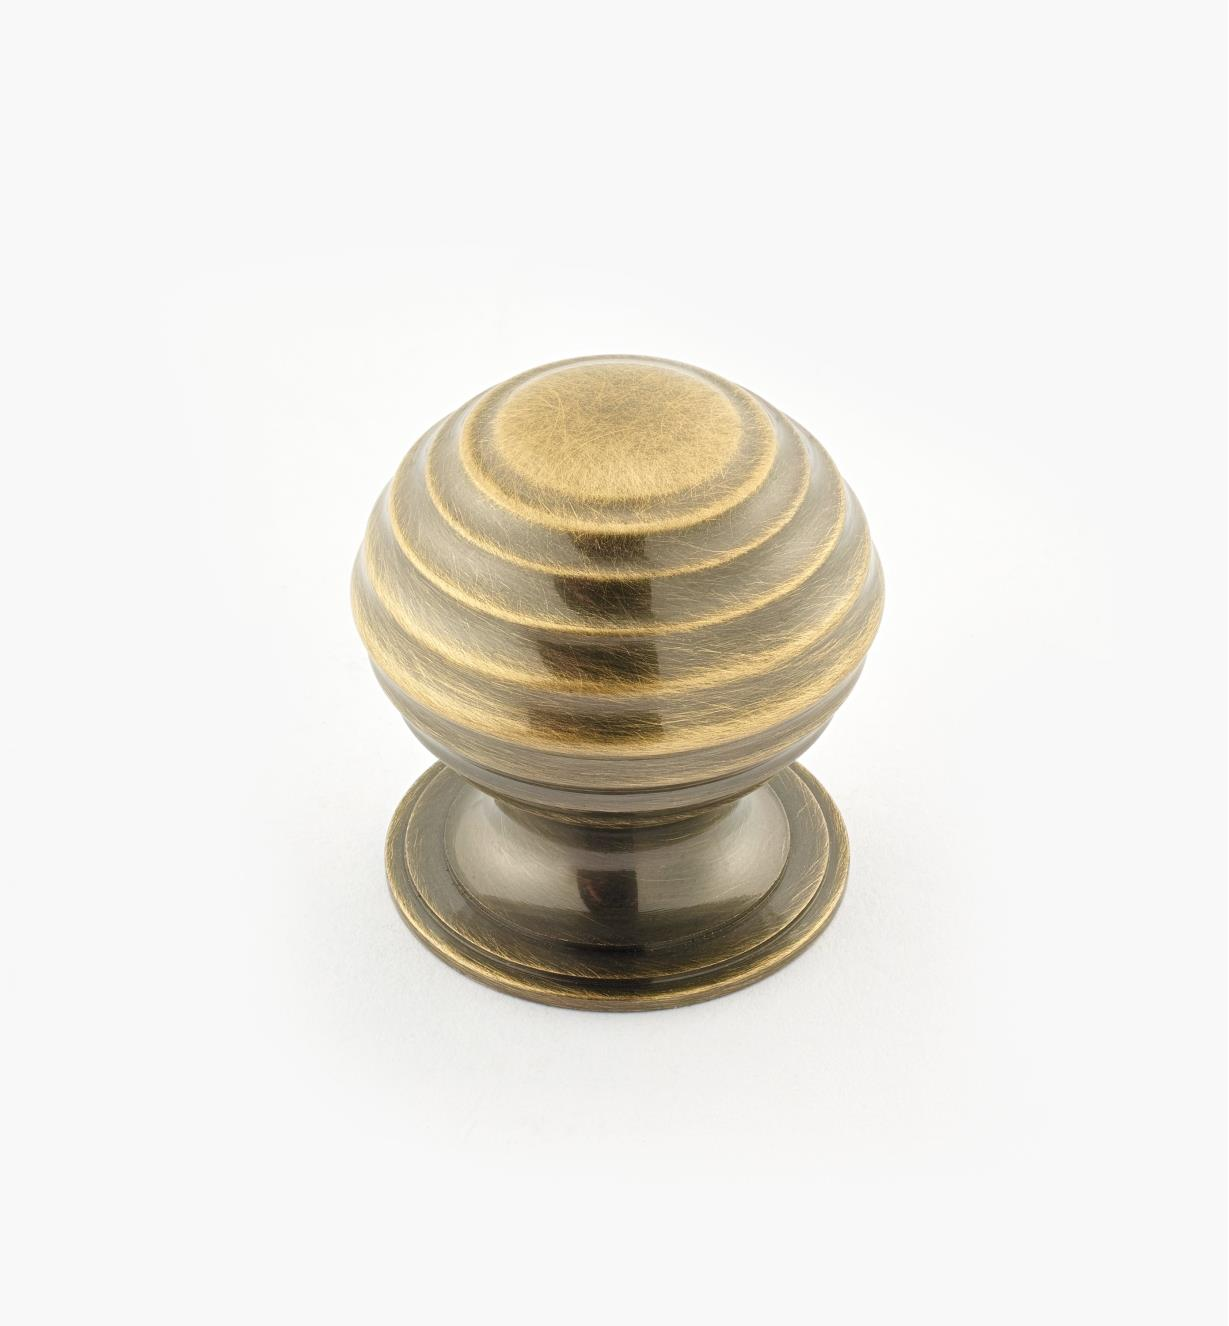 "02W3235 - Antique Brass Suite - 1 1/4"" x 1 1/4"" Turned Brass Ridged Knob"